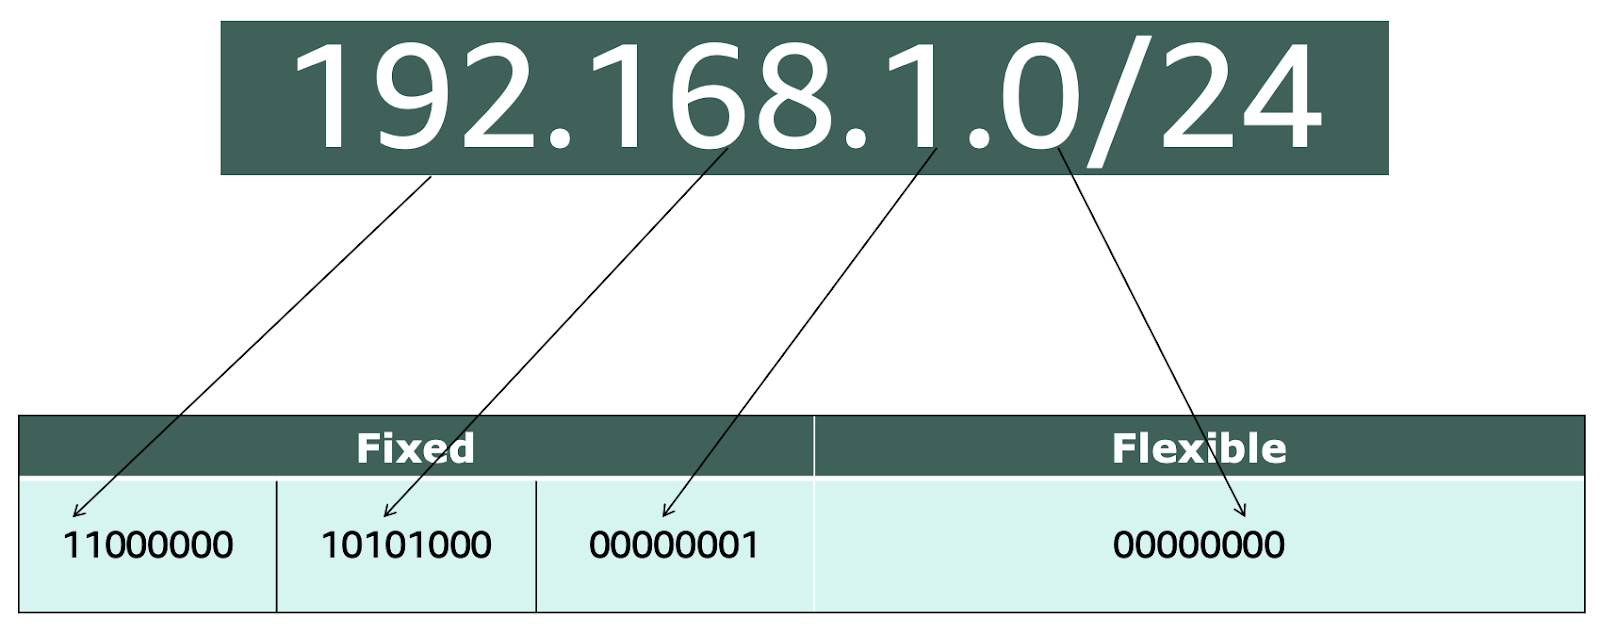 CIDR notation 192.168.1.0/24, broken up into binary: 11000000 10101000 00000001 000000000. The first 24 bits are fixed, and the last 8 bits are flexible.